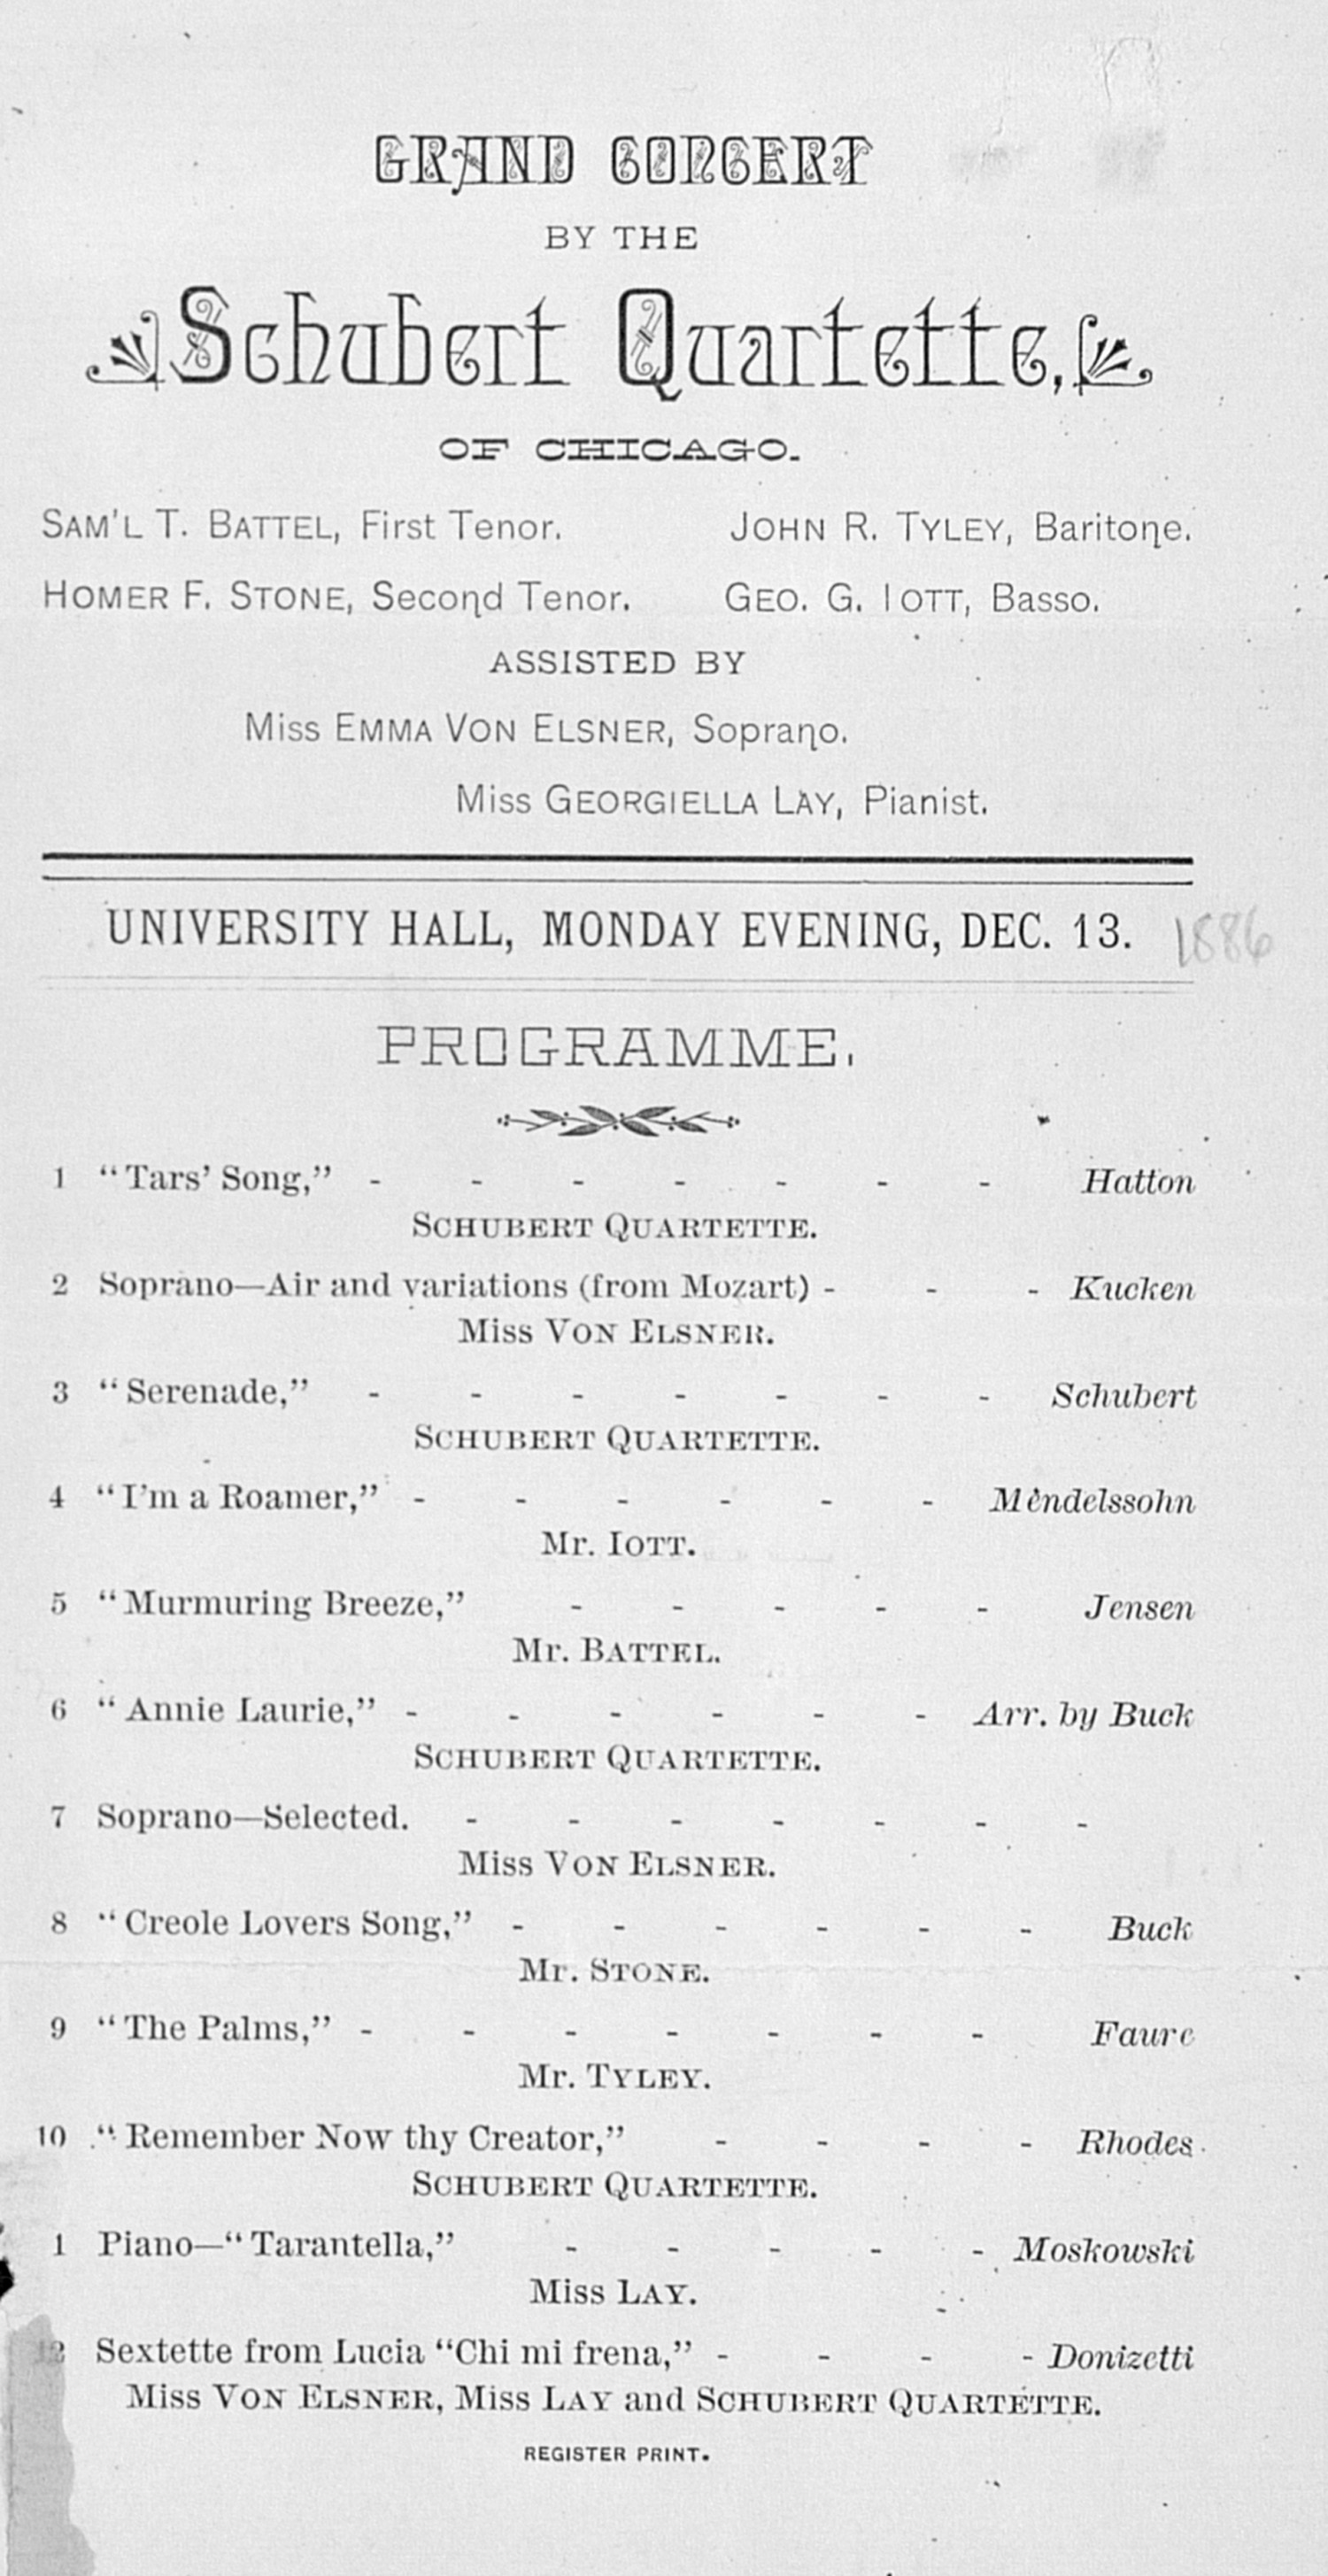 UMS Concert Program, Dec. 13: Grand Concert By The Schubert Quartette --  image